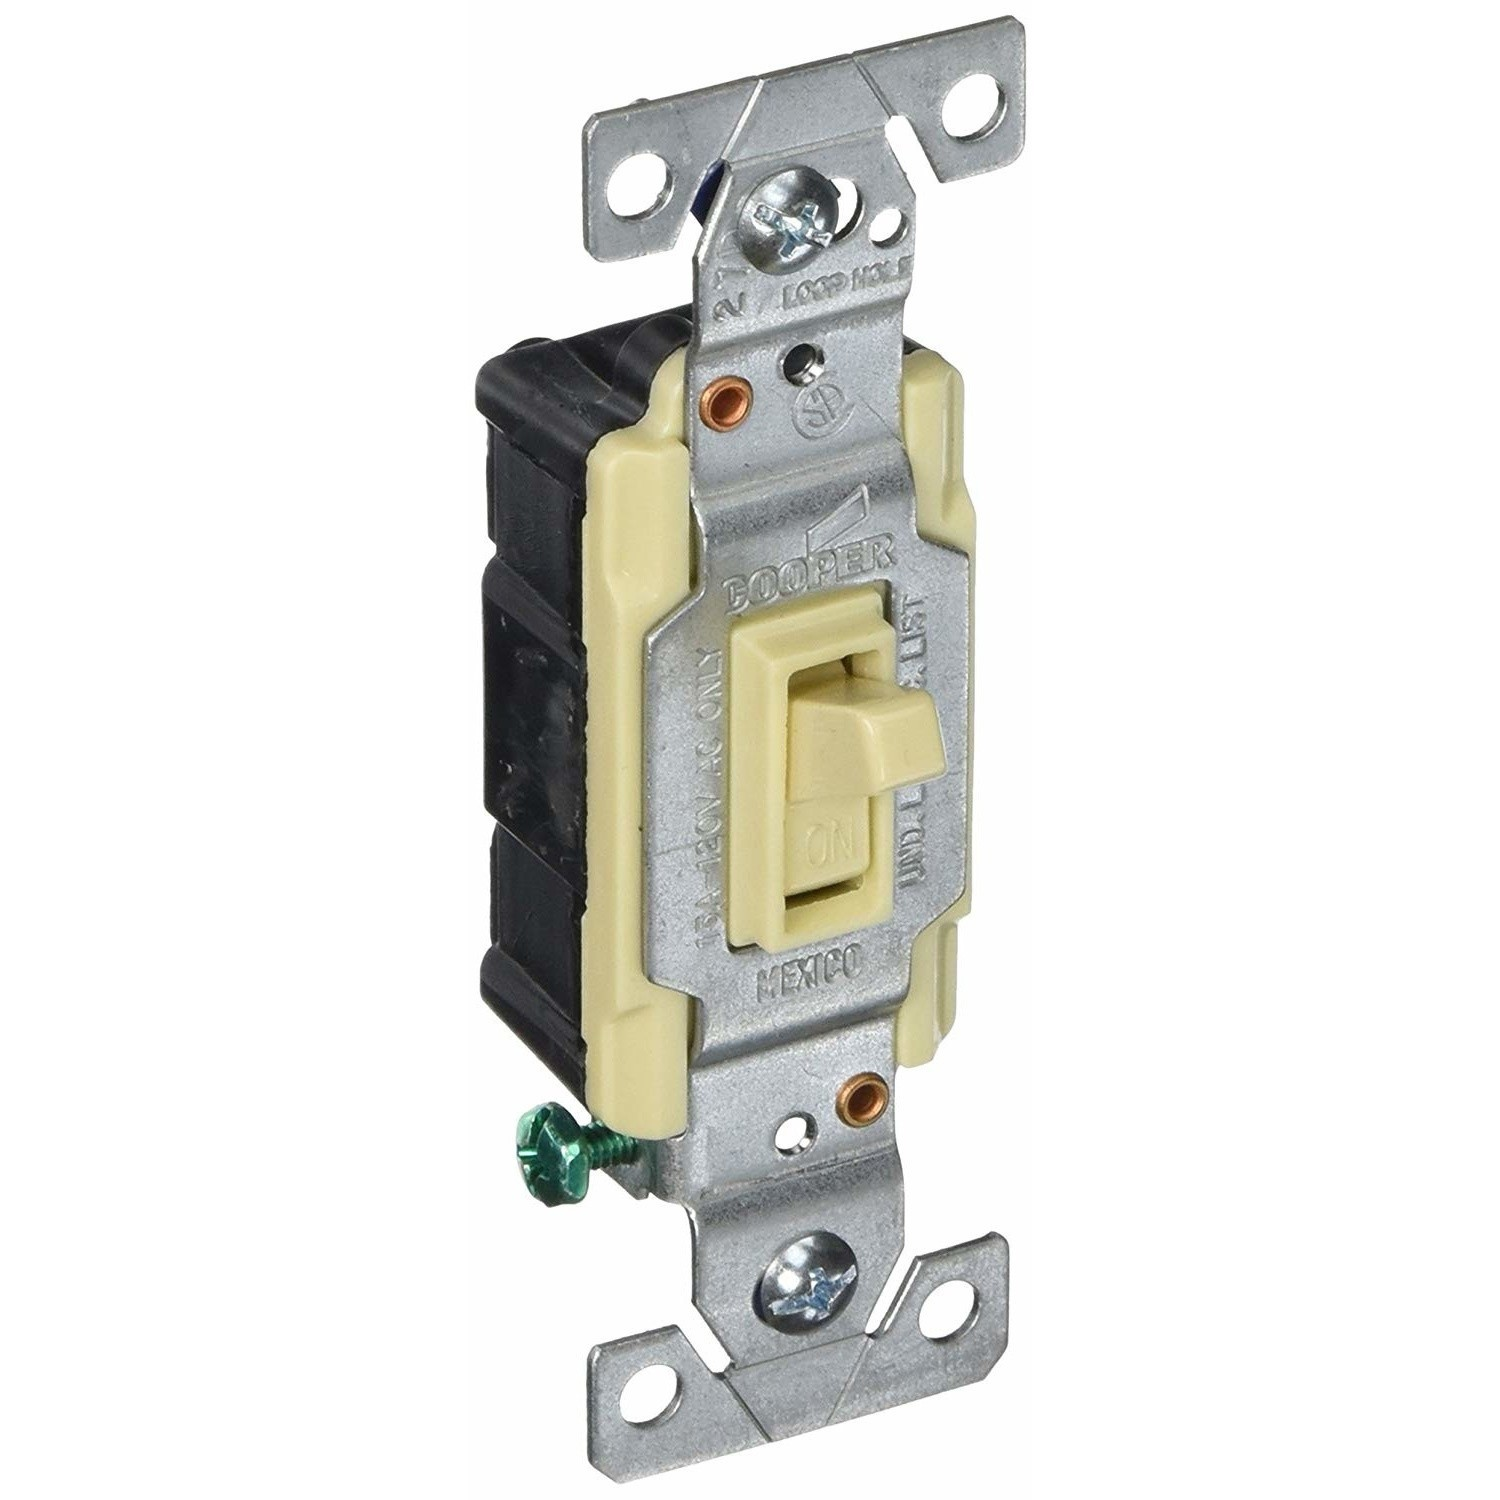 small resolution of cooper wiring c1301 7ltv 1 pole ivory lighted toggle switch cooper wiring c1301 7ltv 1 pole